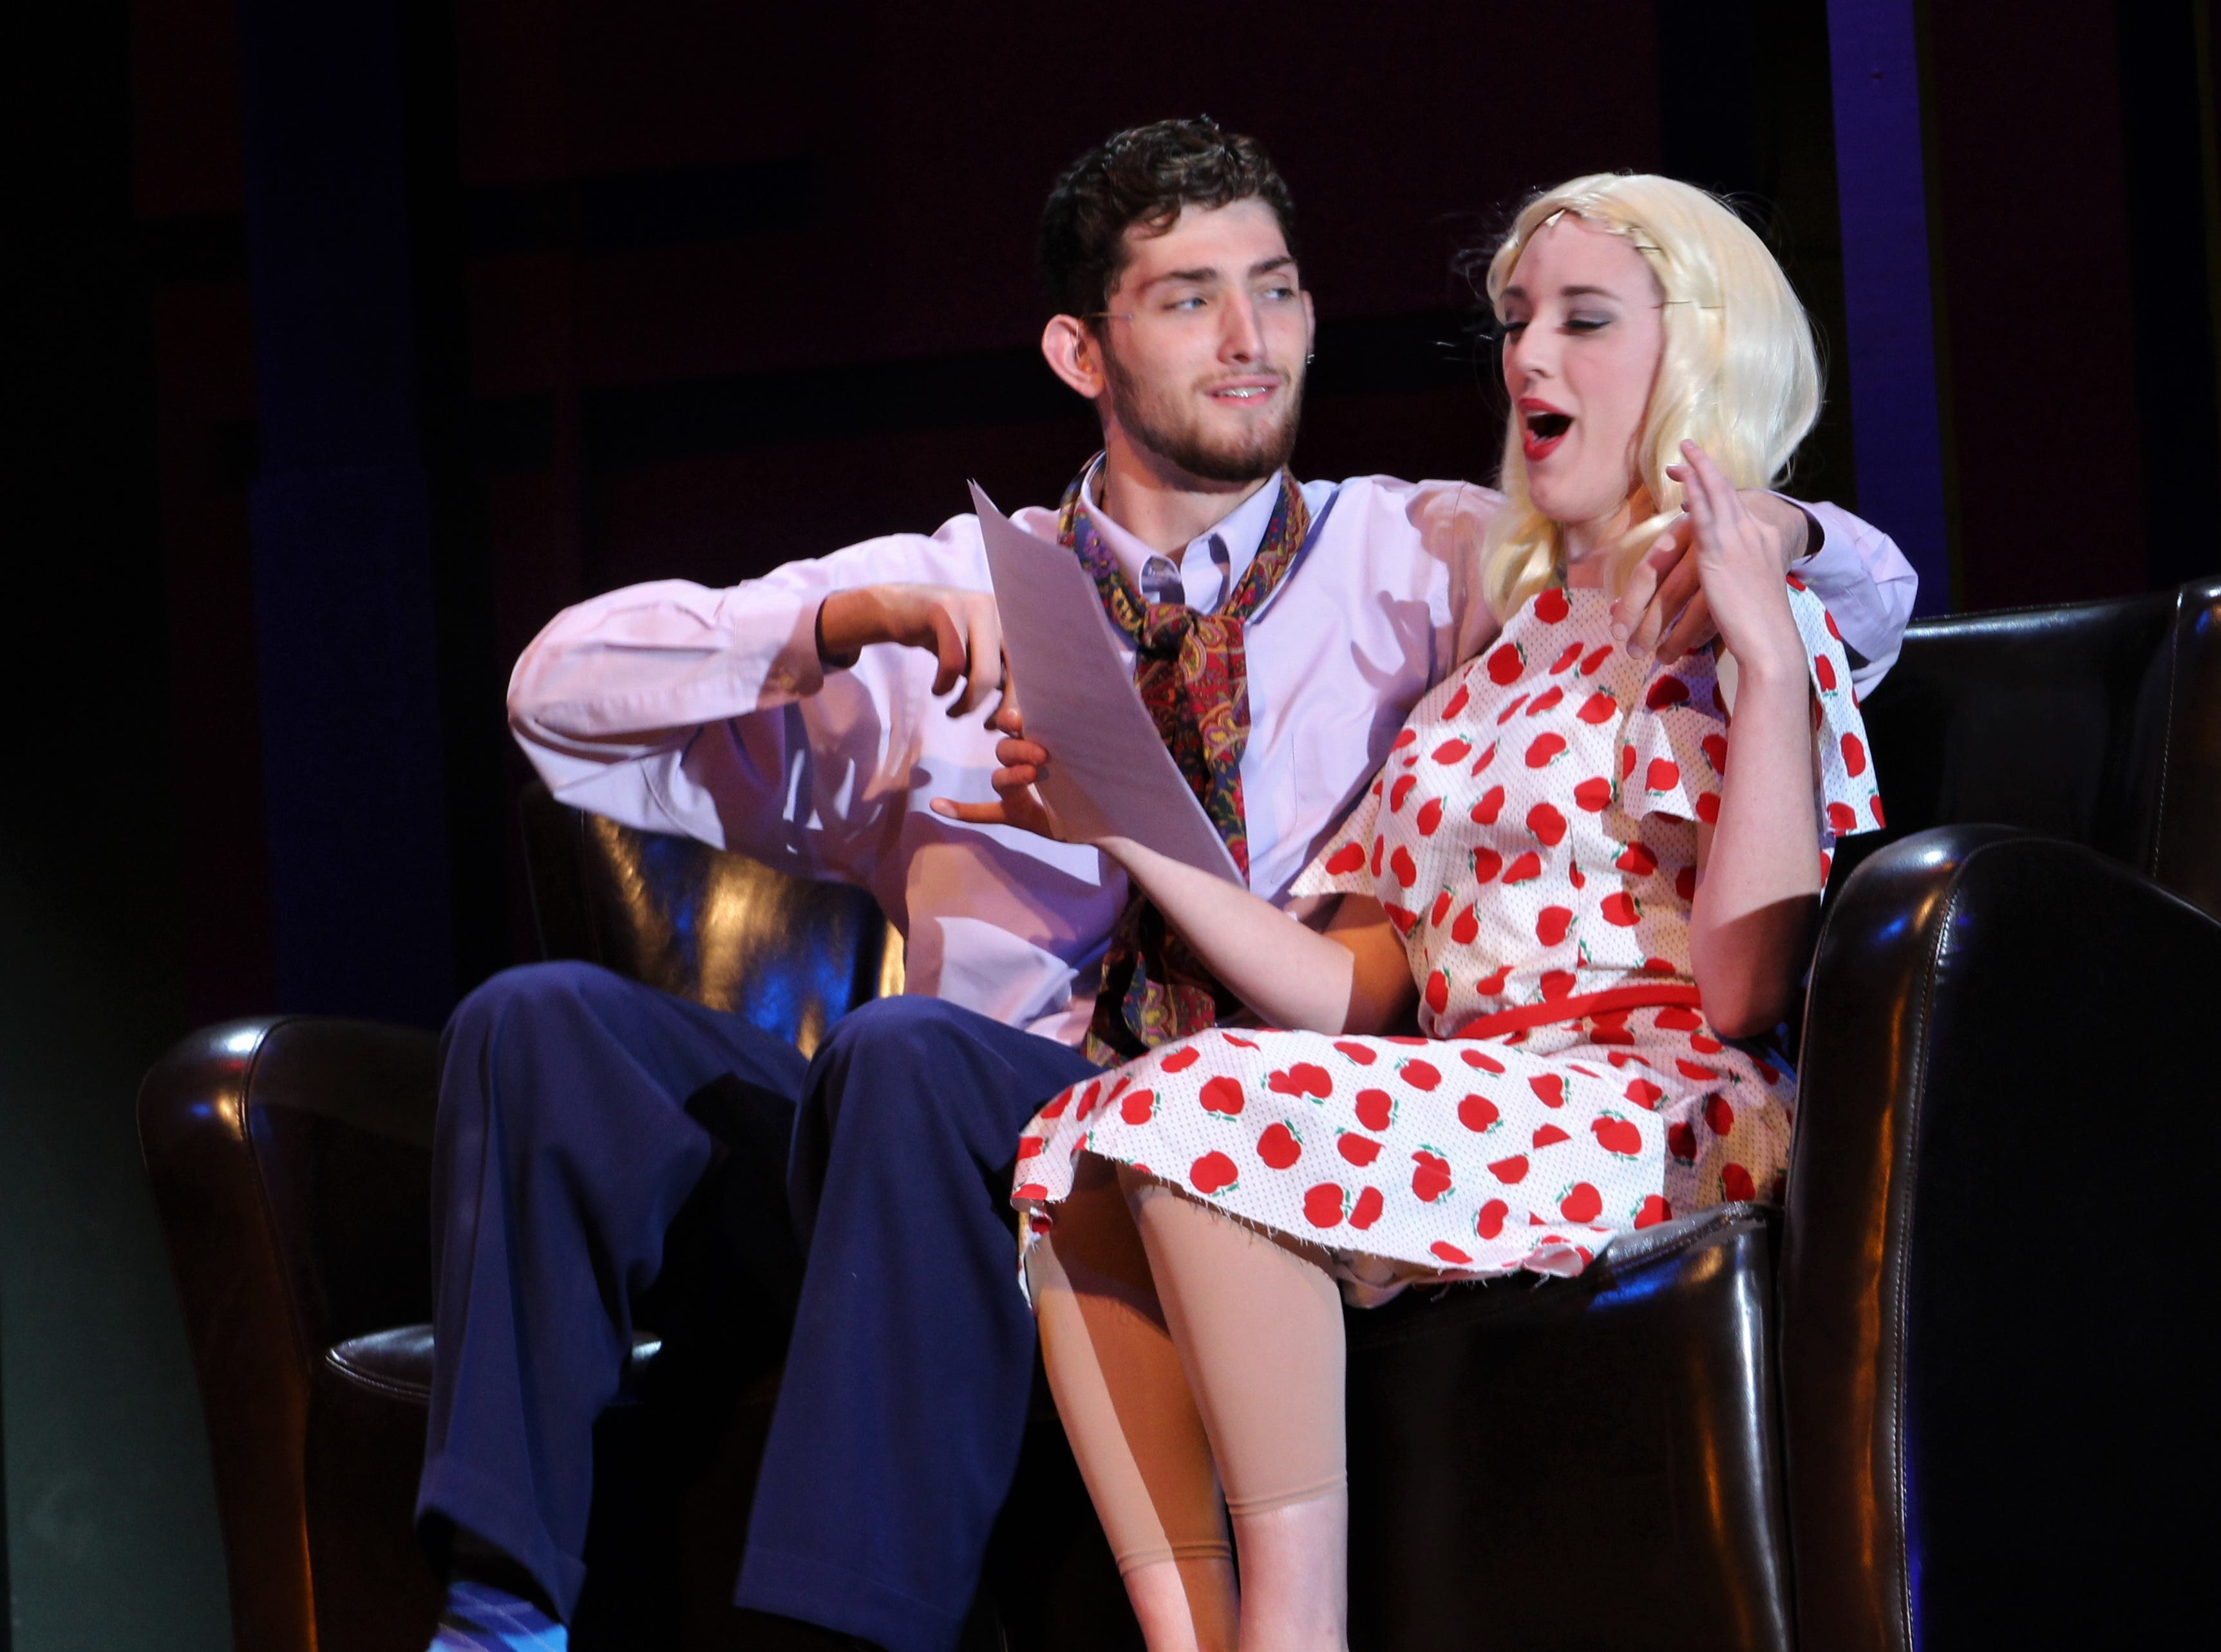 """Eileen Sherwood (Helena Lynch) discovers there is more to her acting audition that just a script and dancing in this rehearsal scene from Abilene Christian's 2018 homecoming musical """"Wonderful Town."""" Mitchell Bradford is the guy trying to make a move on Eileen."""